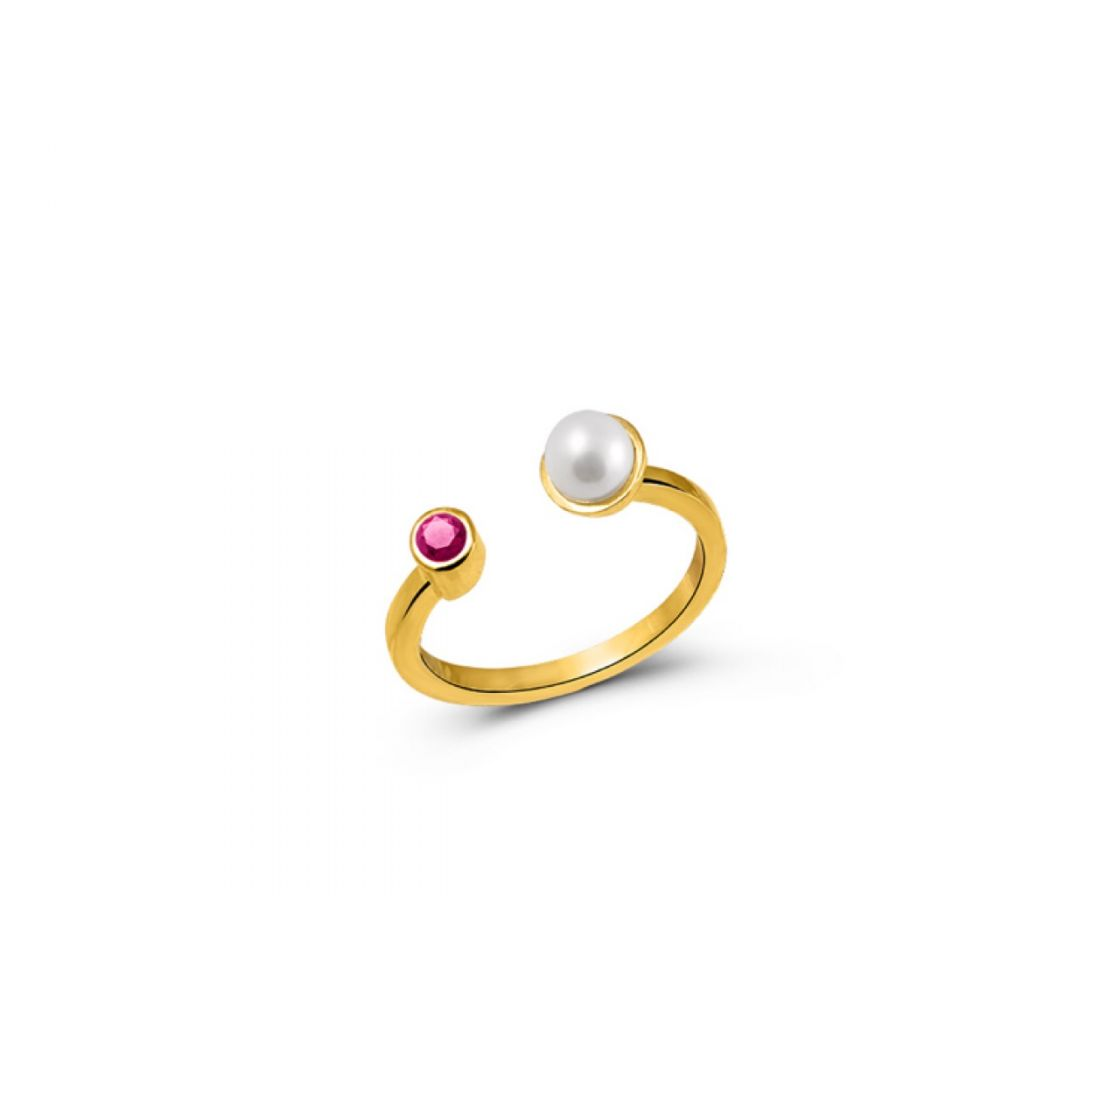 Adjustable elegant ring with a pearl and a bezel set red zircon stone.